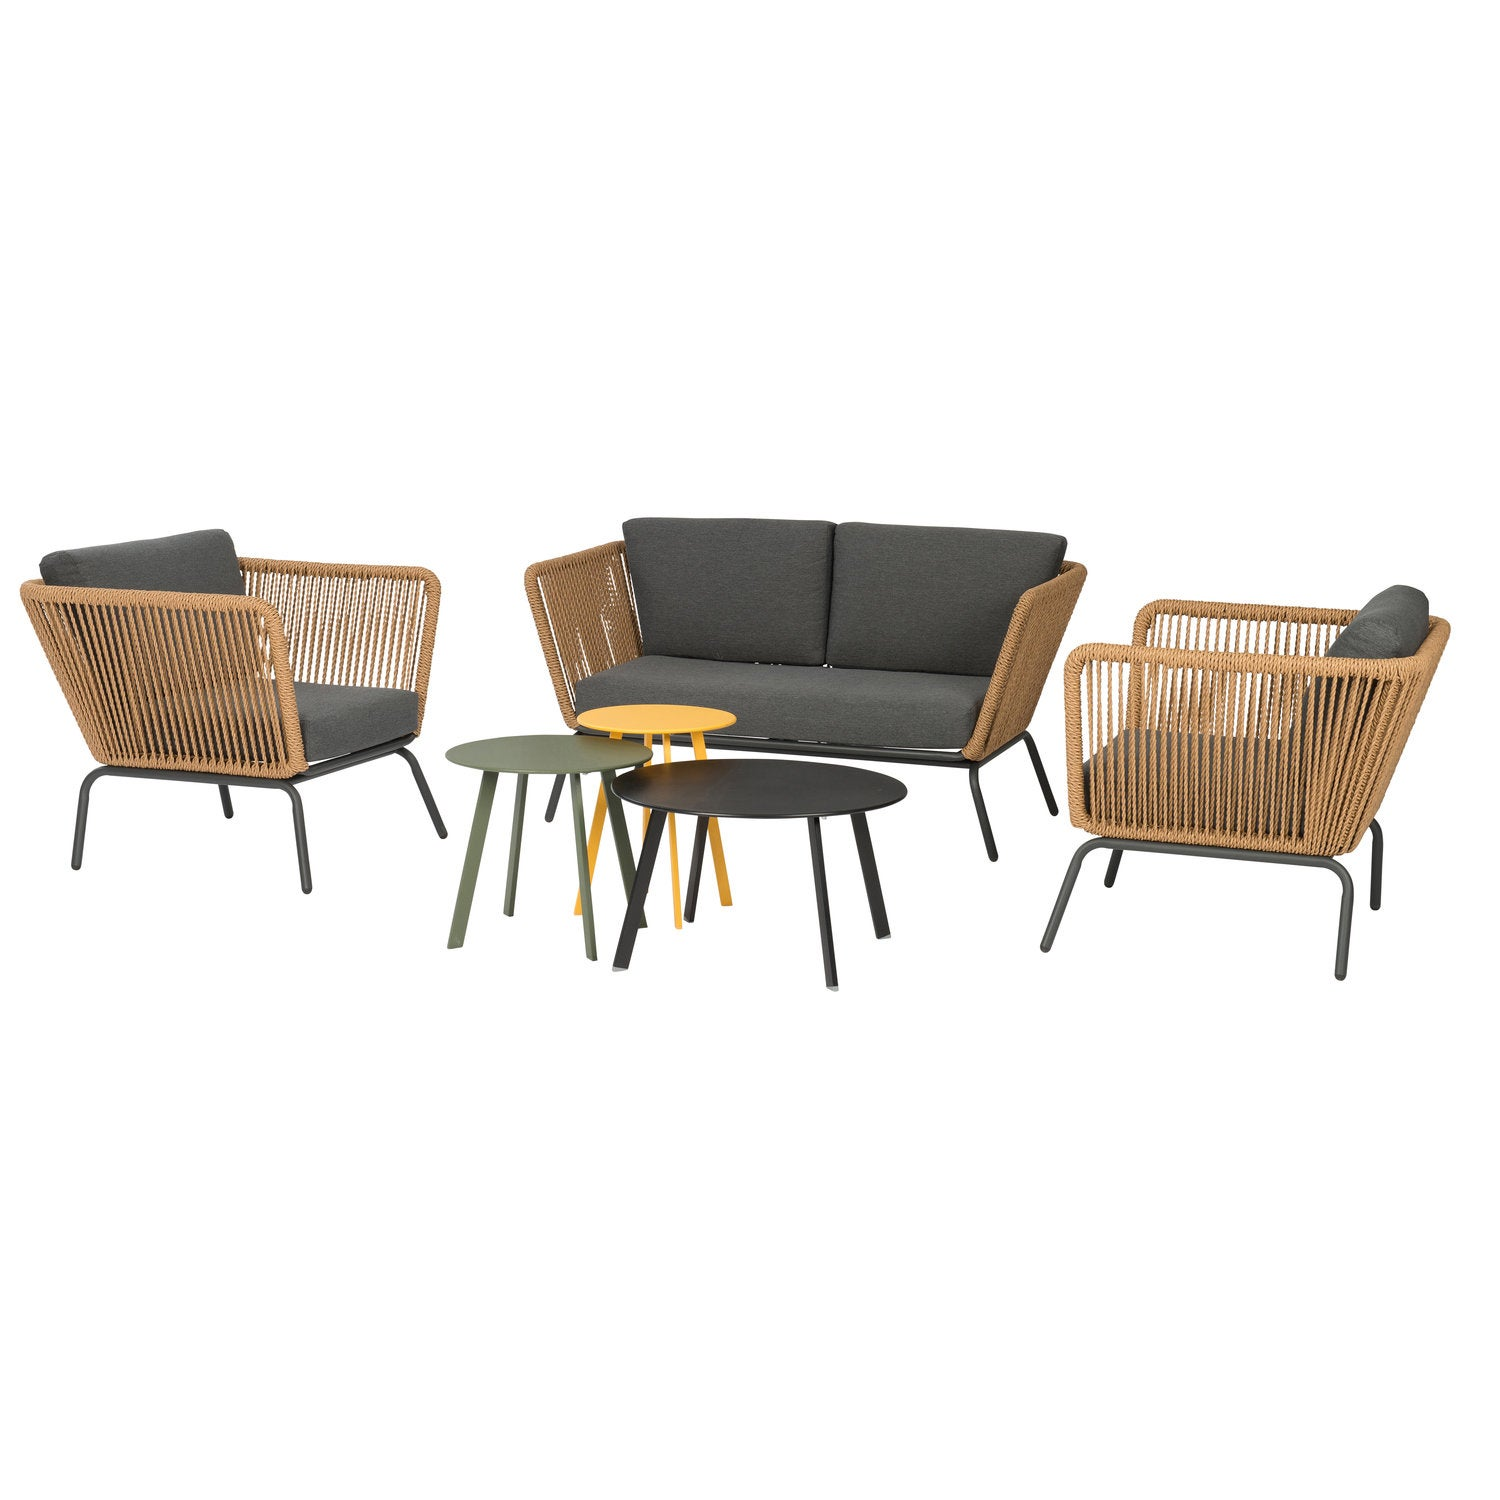 Intratuin 4-zits loungeset Iris wicker naturel